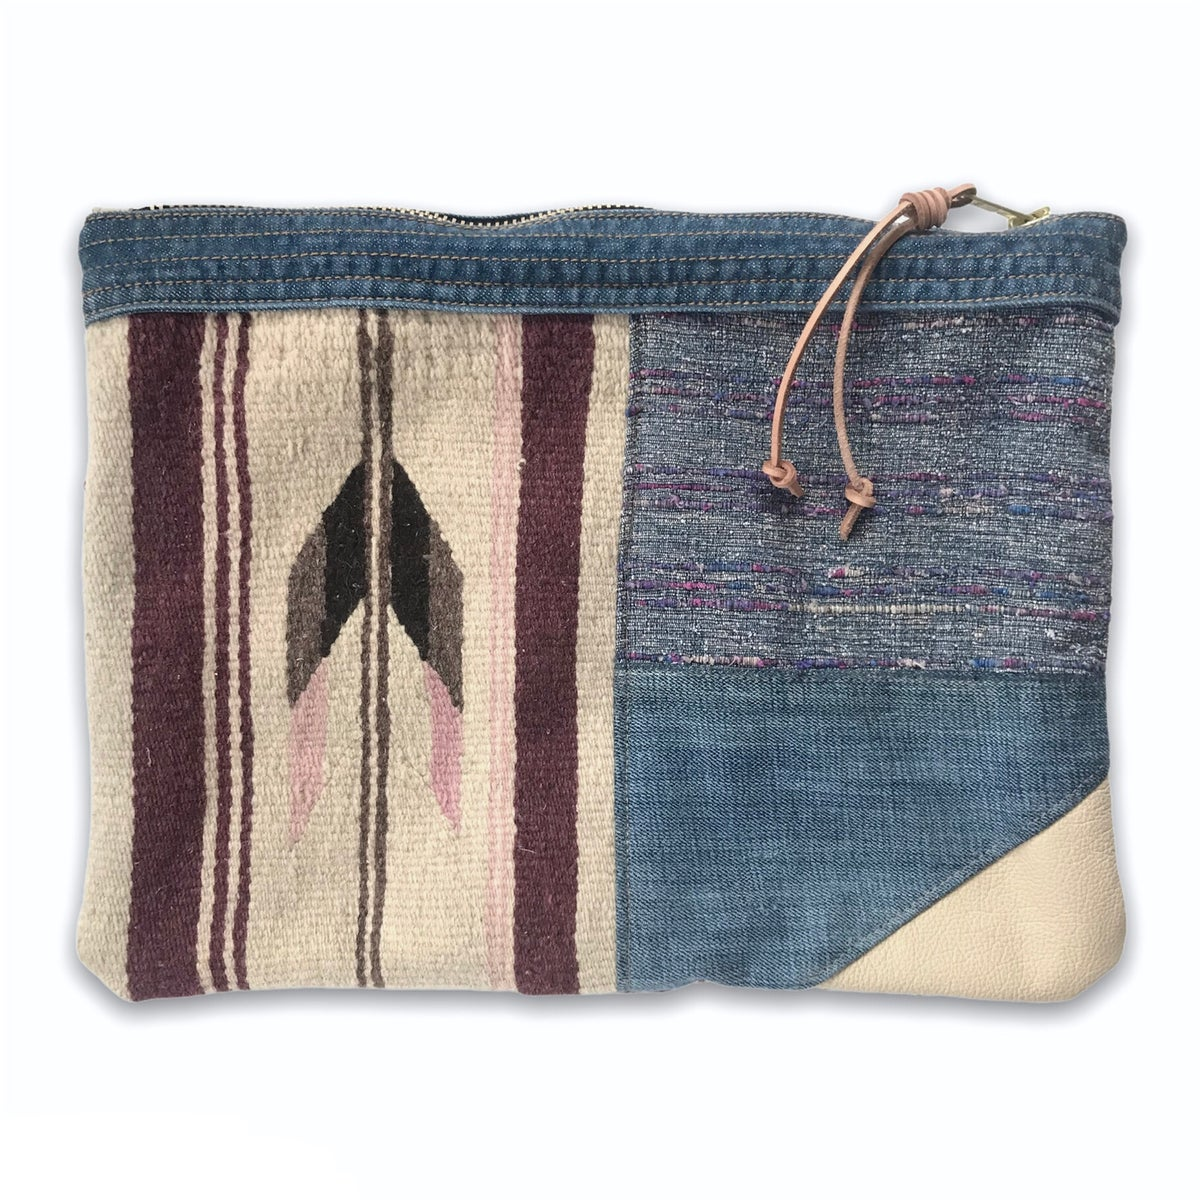 Image of COLLAGE POUCH 3 - LARGE